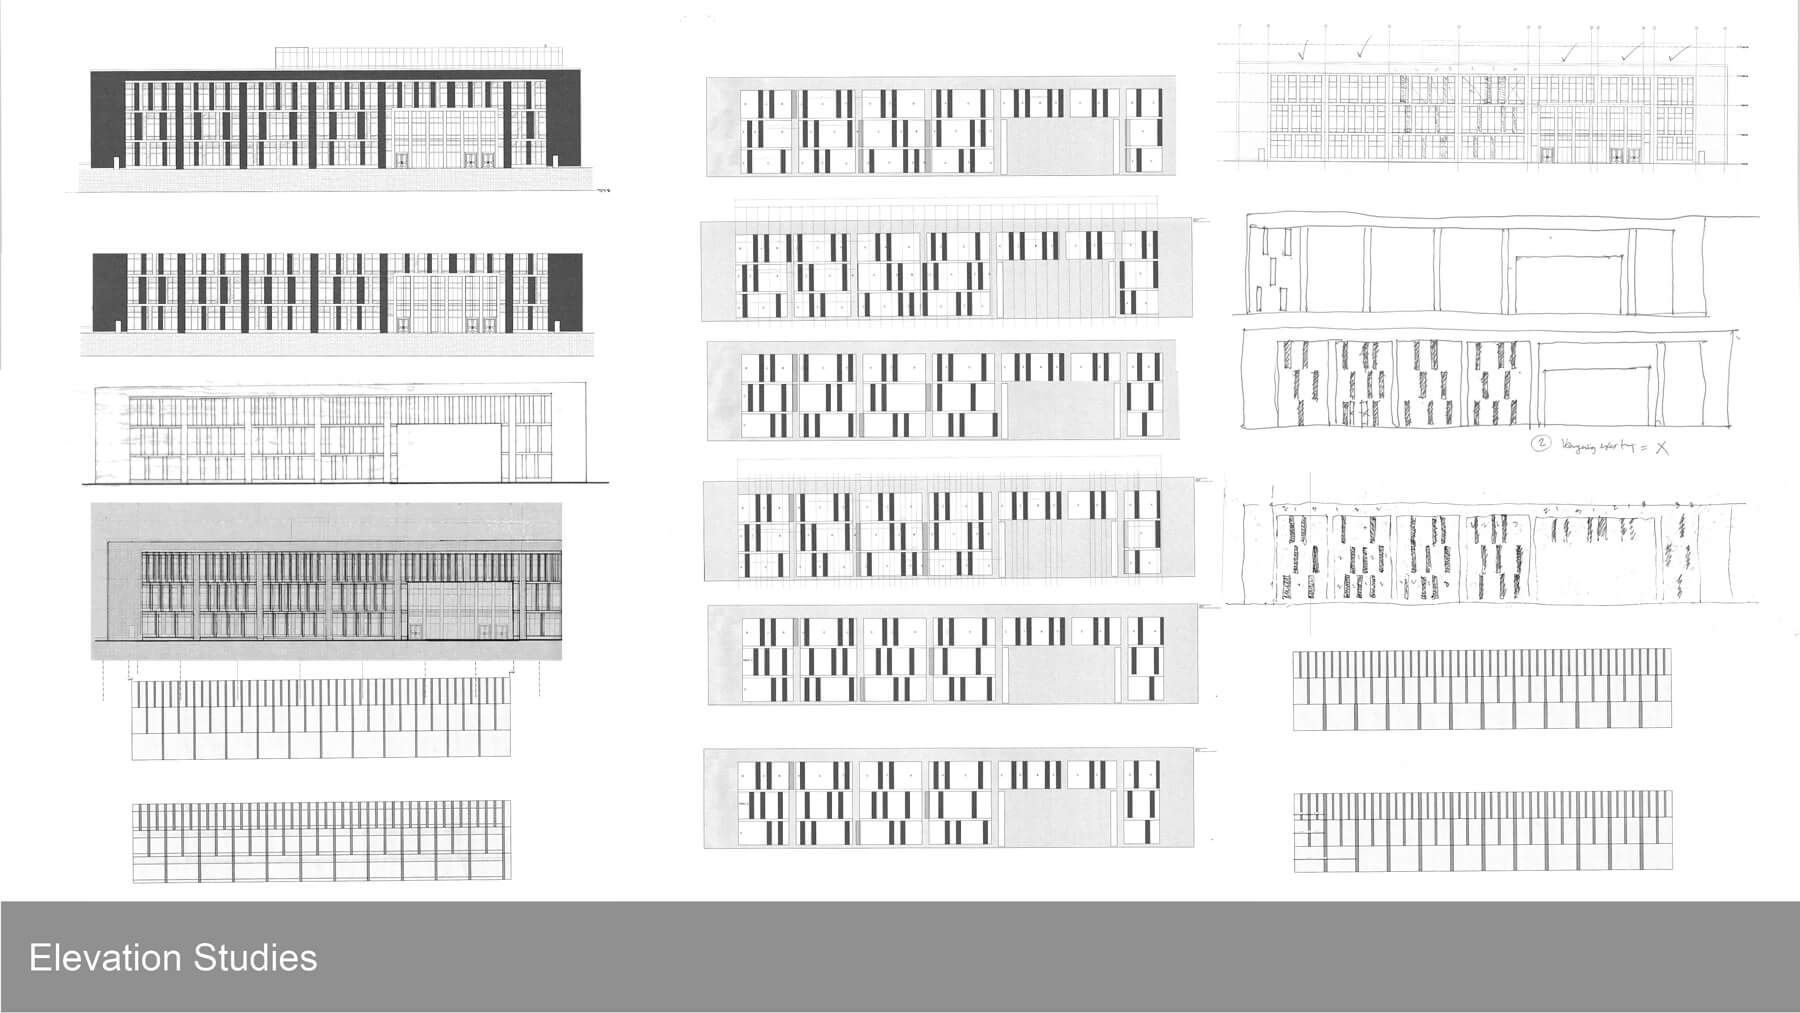 Black and white elevation studies for the York Judicial Center.